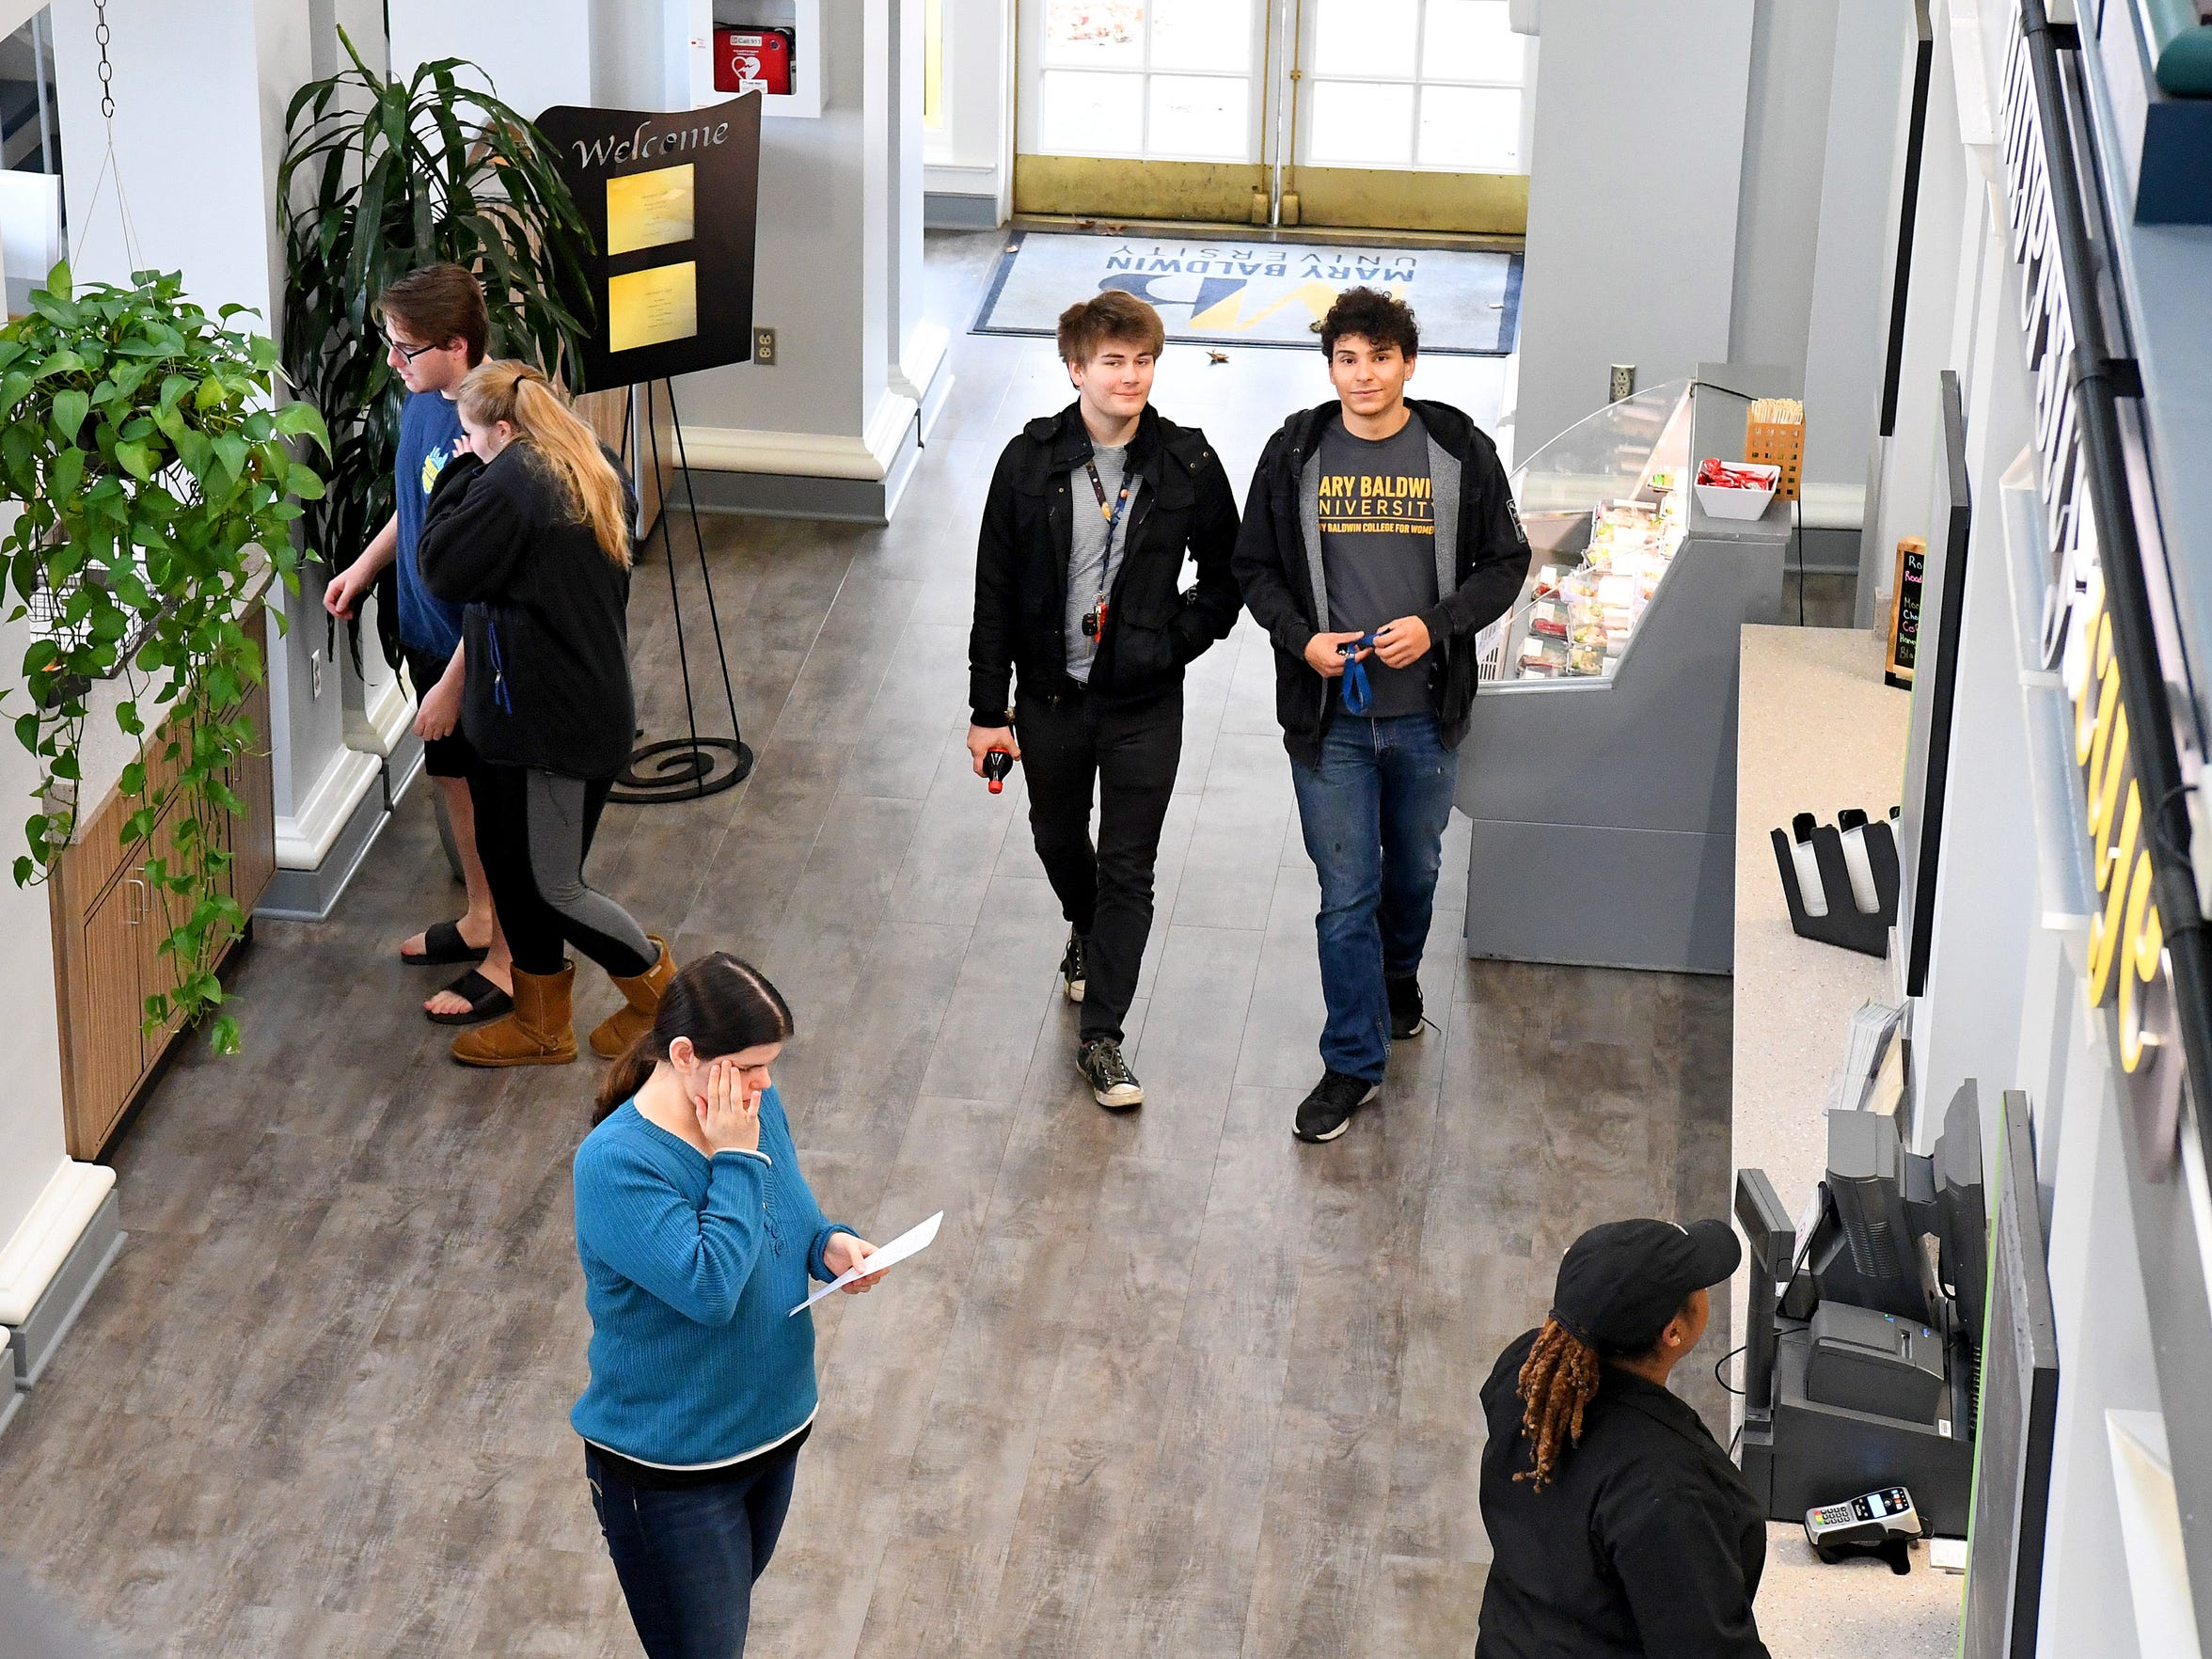 """Being one of the first males at Mary Baldwin University """"definitely gave me more respect just all around, and more understanding of where other people are coming from,"""" says Dominic Walker. He and Logan Davenport arrive at University Cafe on campus on Tuesday, Nov. 20, 2018."""